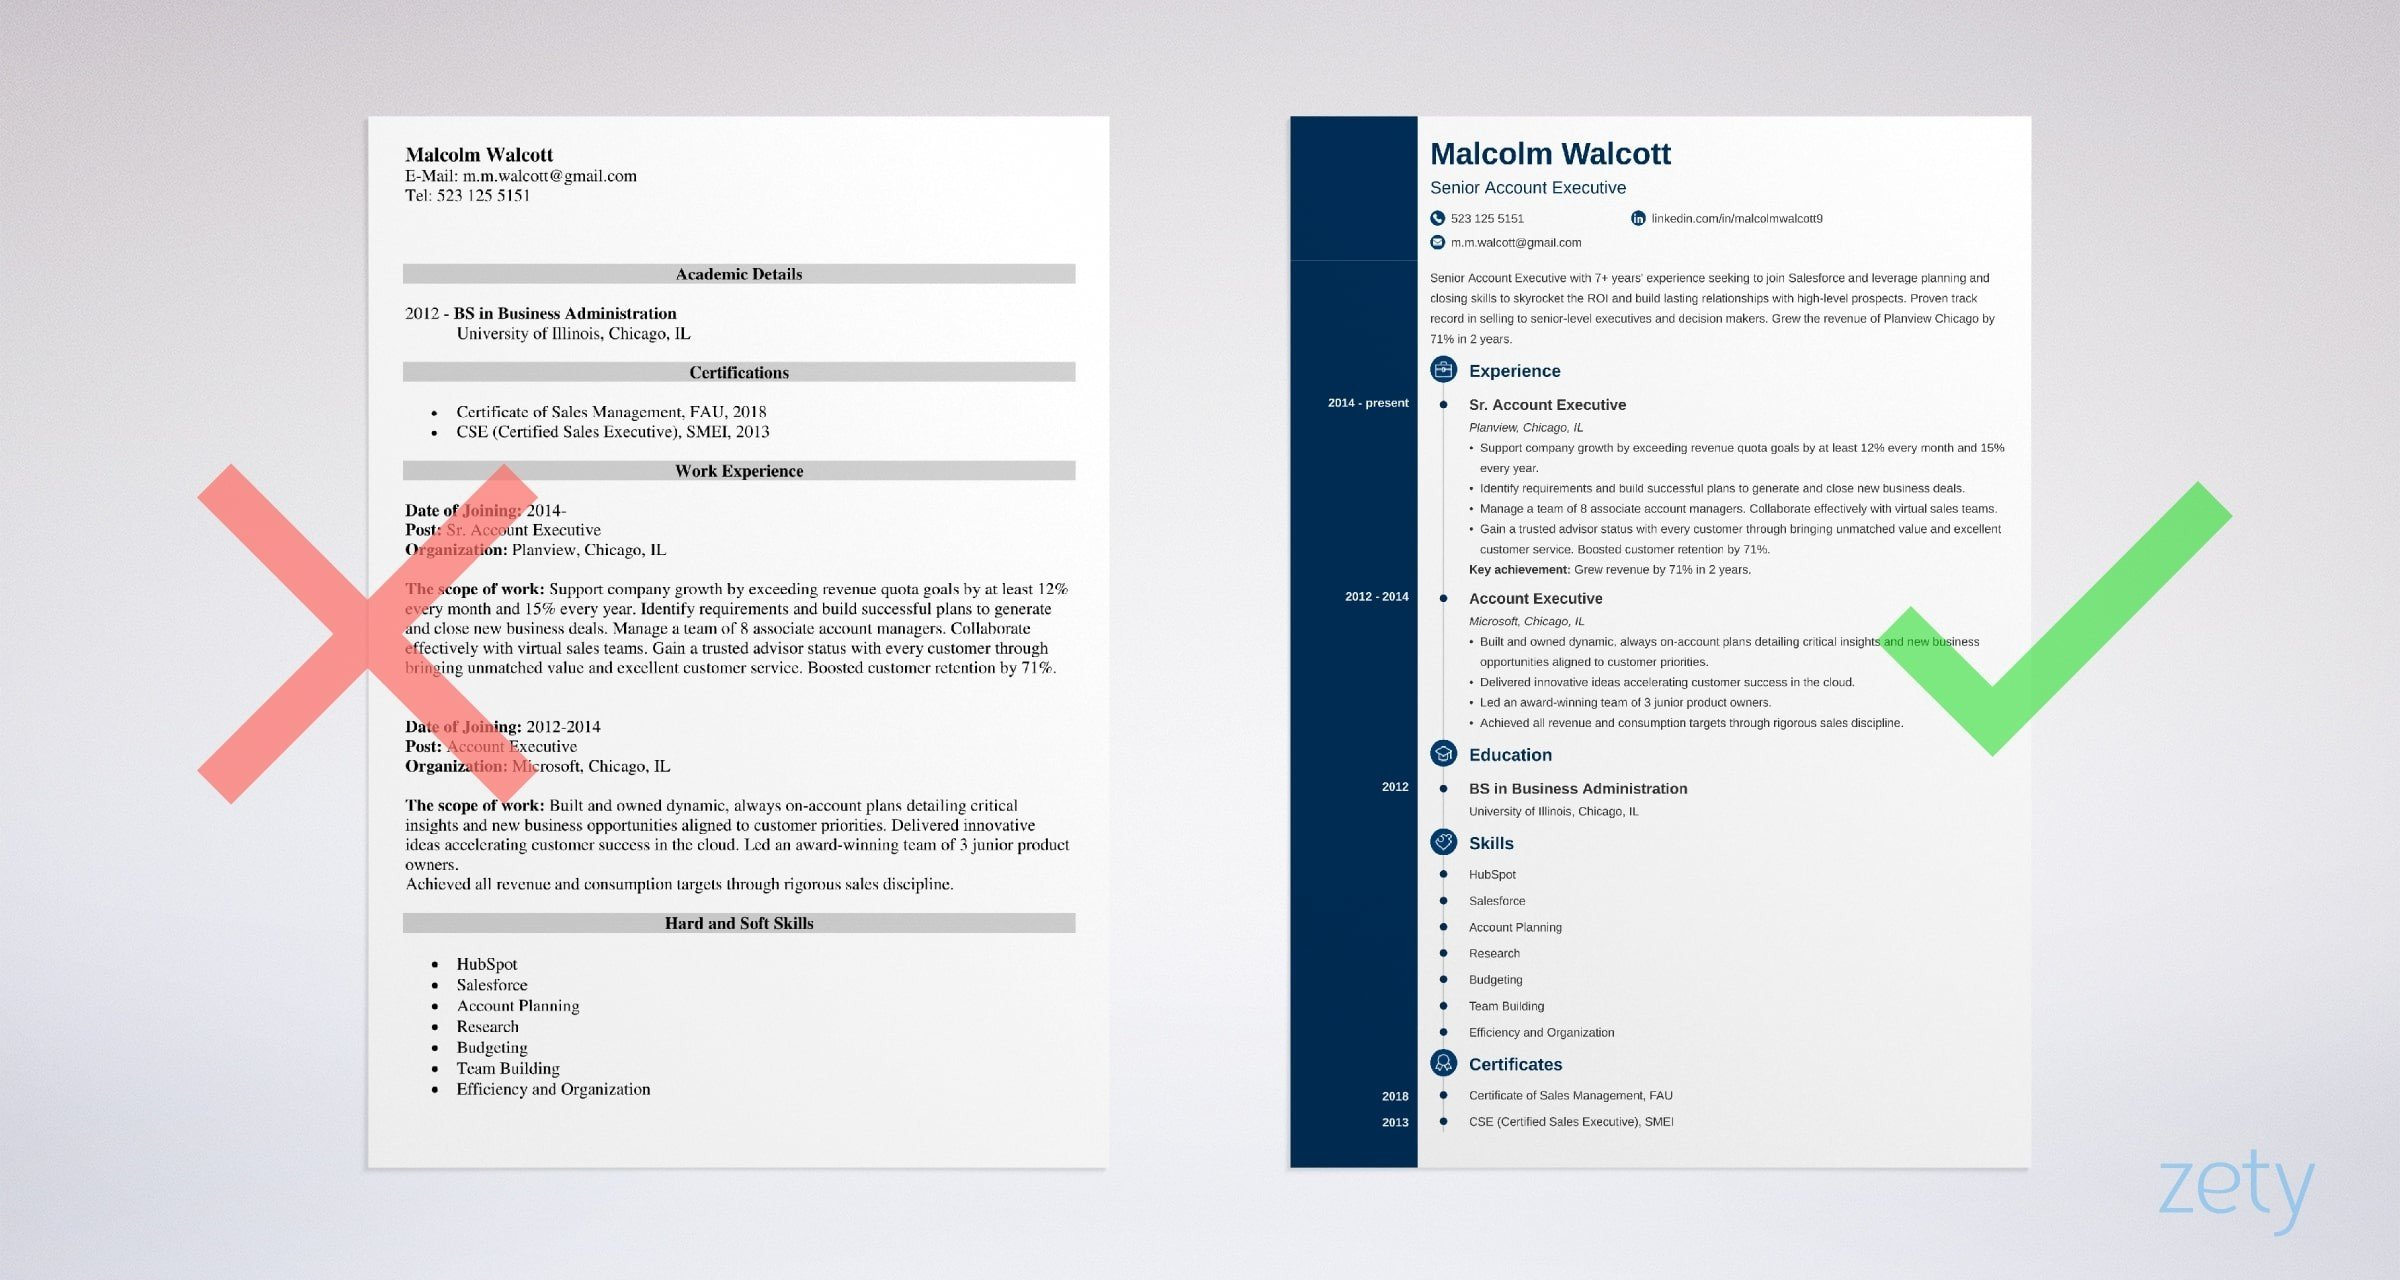 Executive Resume Template 2019 from mthomearts.com